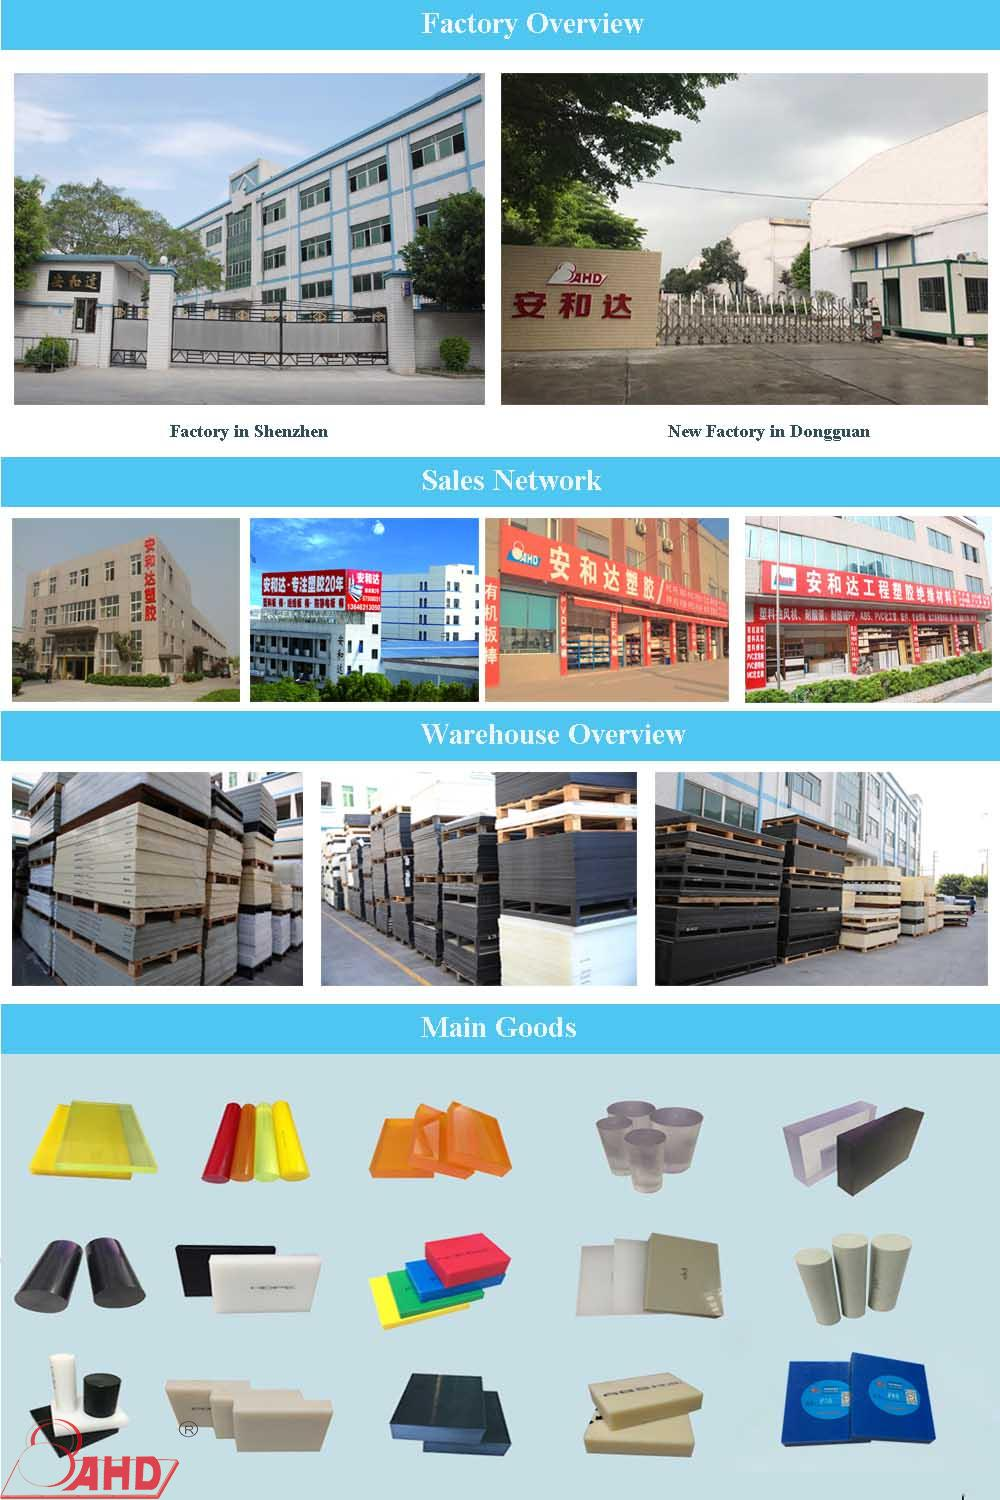 PP Polypropylene Sheets company photo